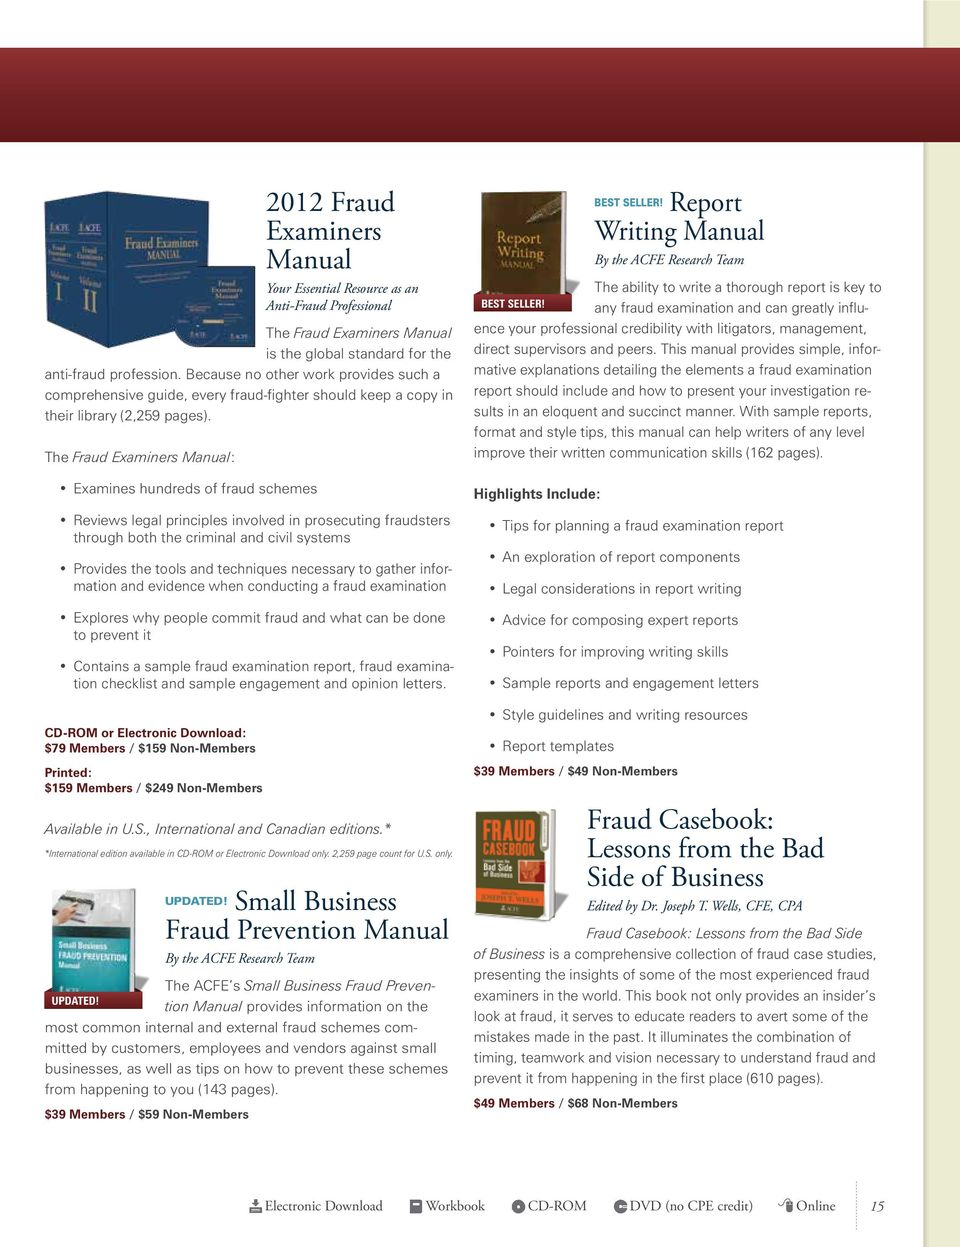 The Fraud Examiners Manual: Examines hundreds of fraud schemes Reviews  legal principles involved in prosecuting